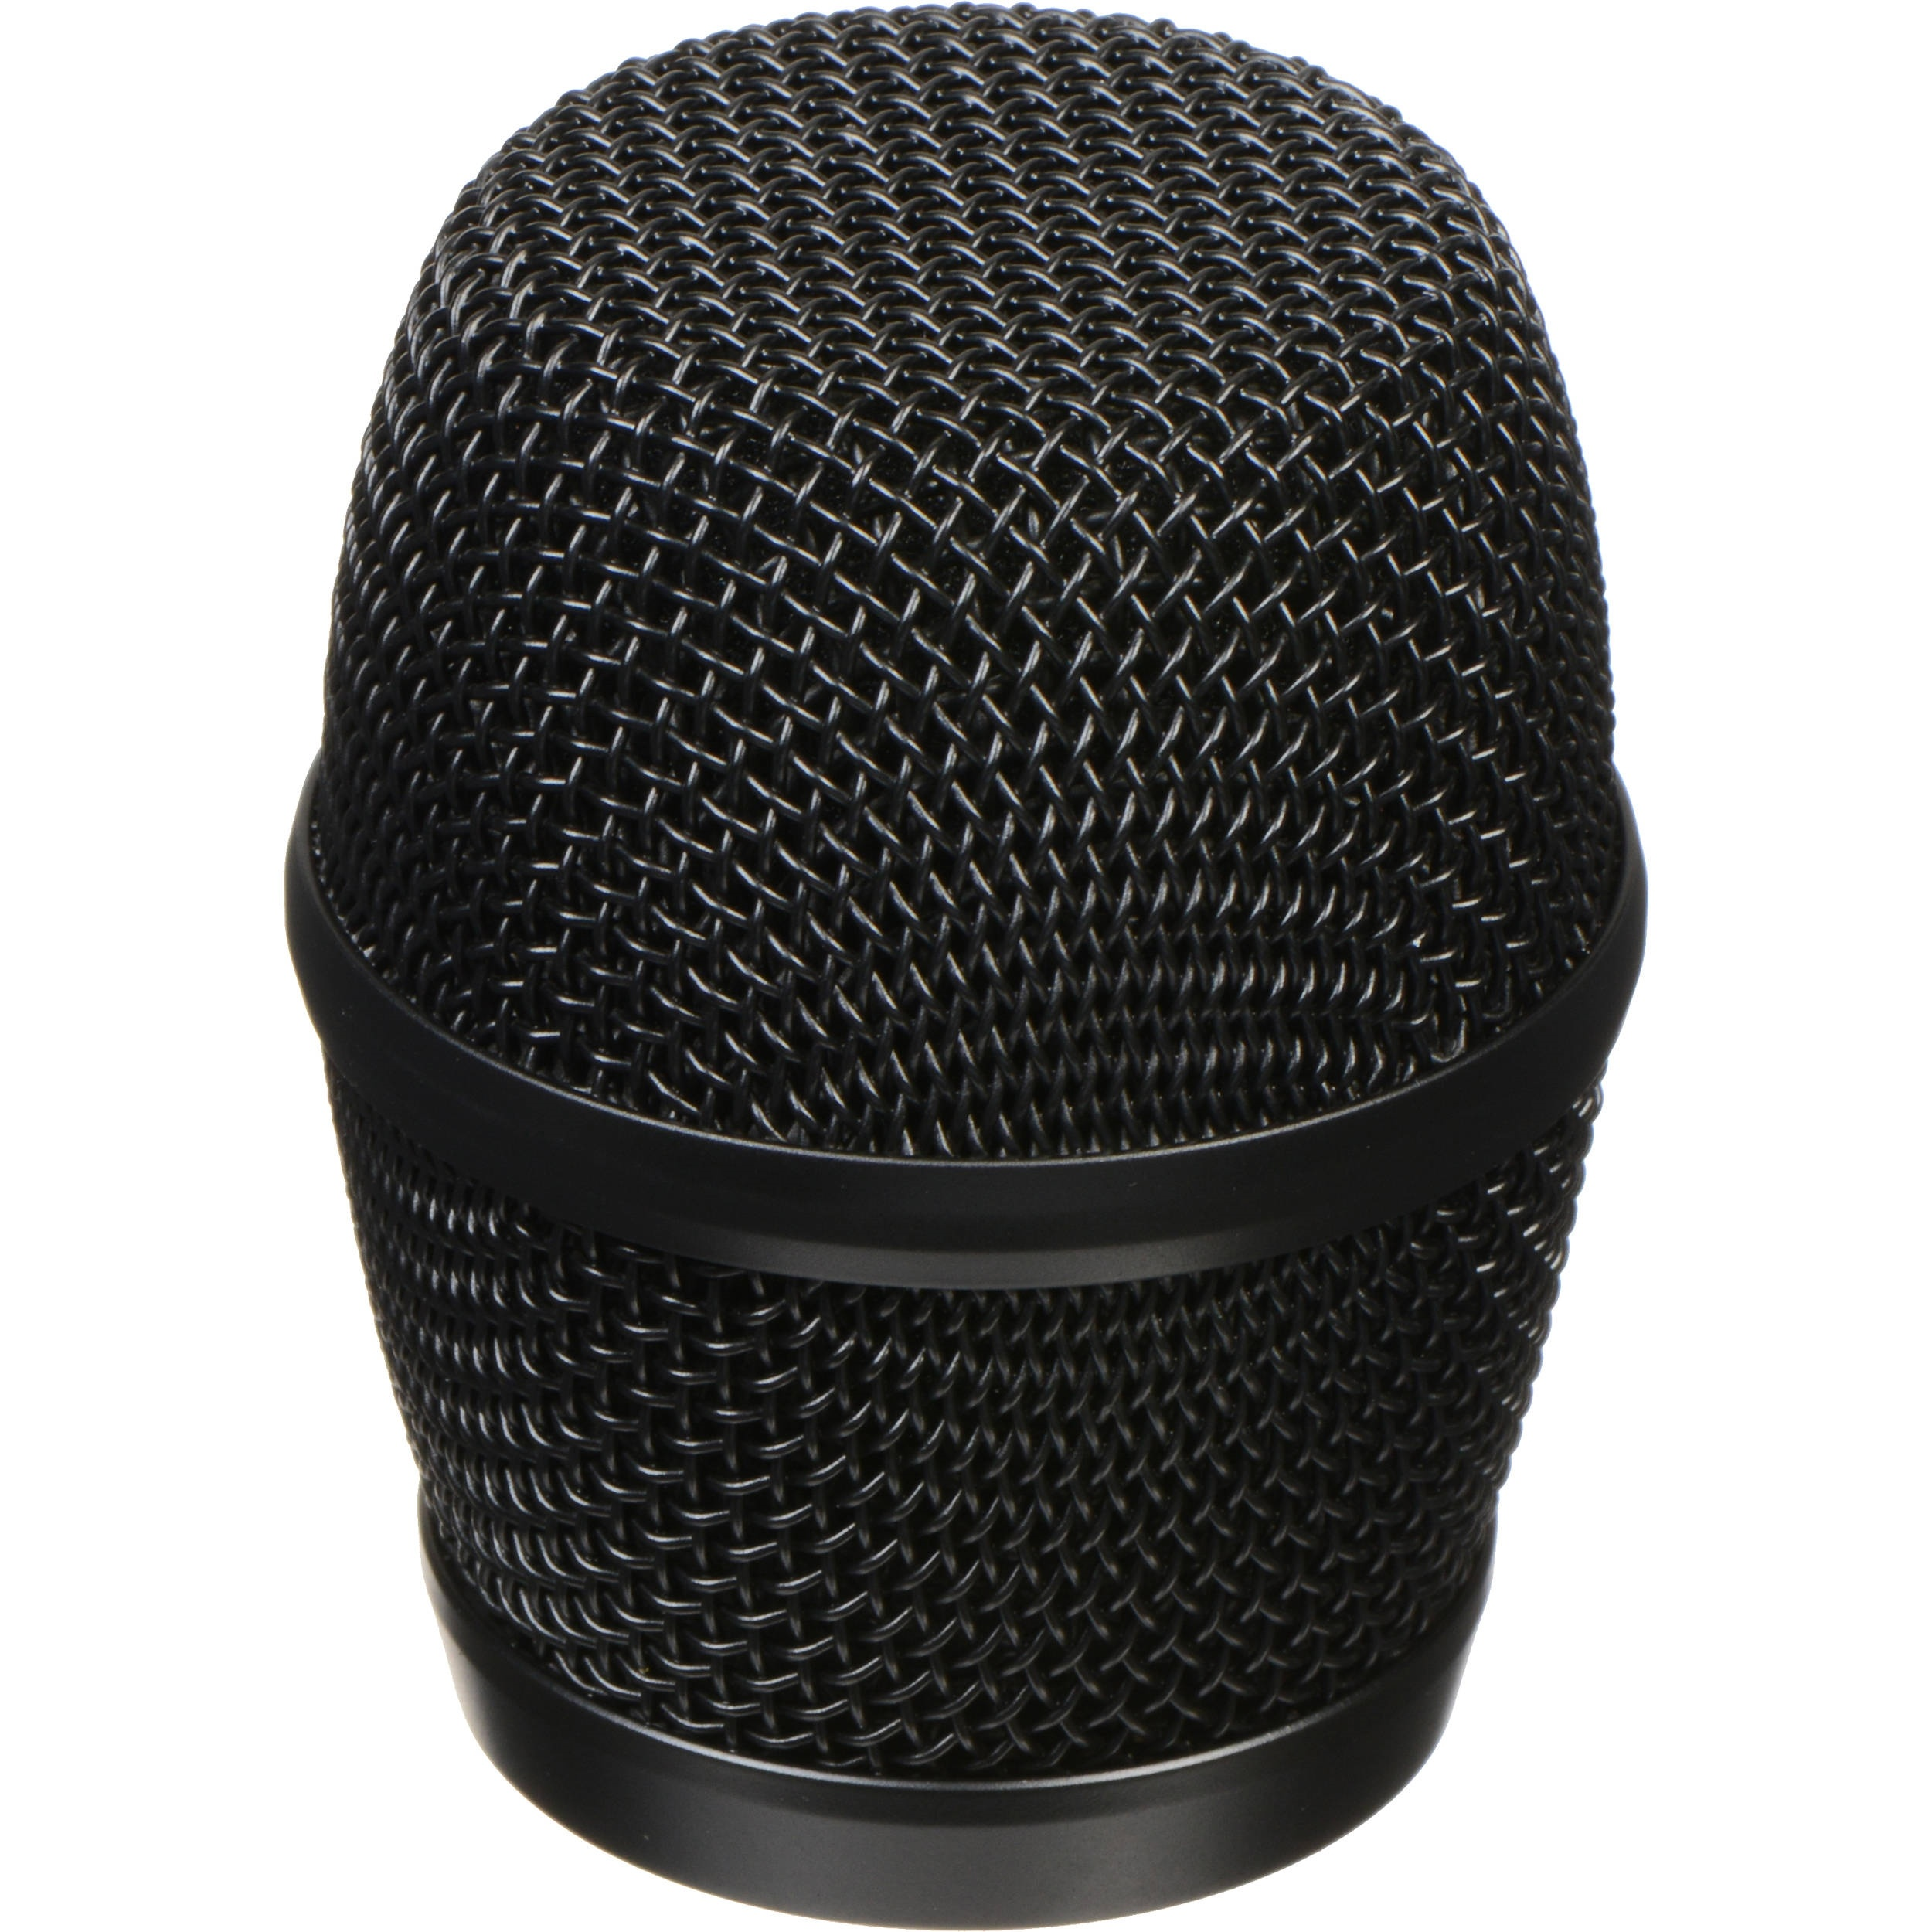 Shure RPM264 Factory Original KSM9 Microphone Replacement Grille (Black)